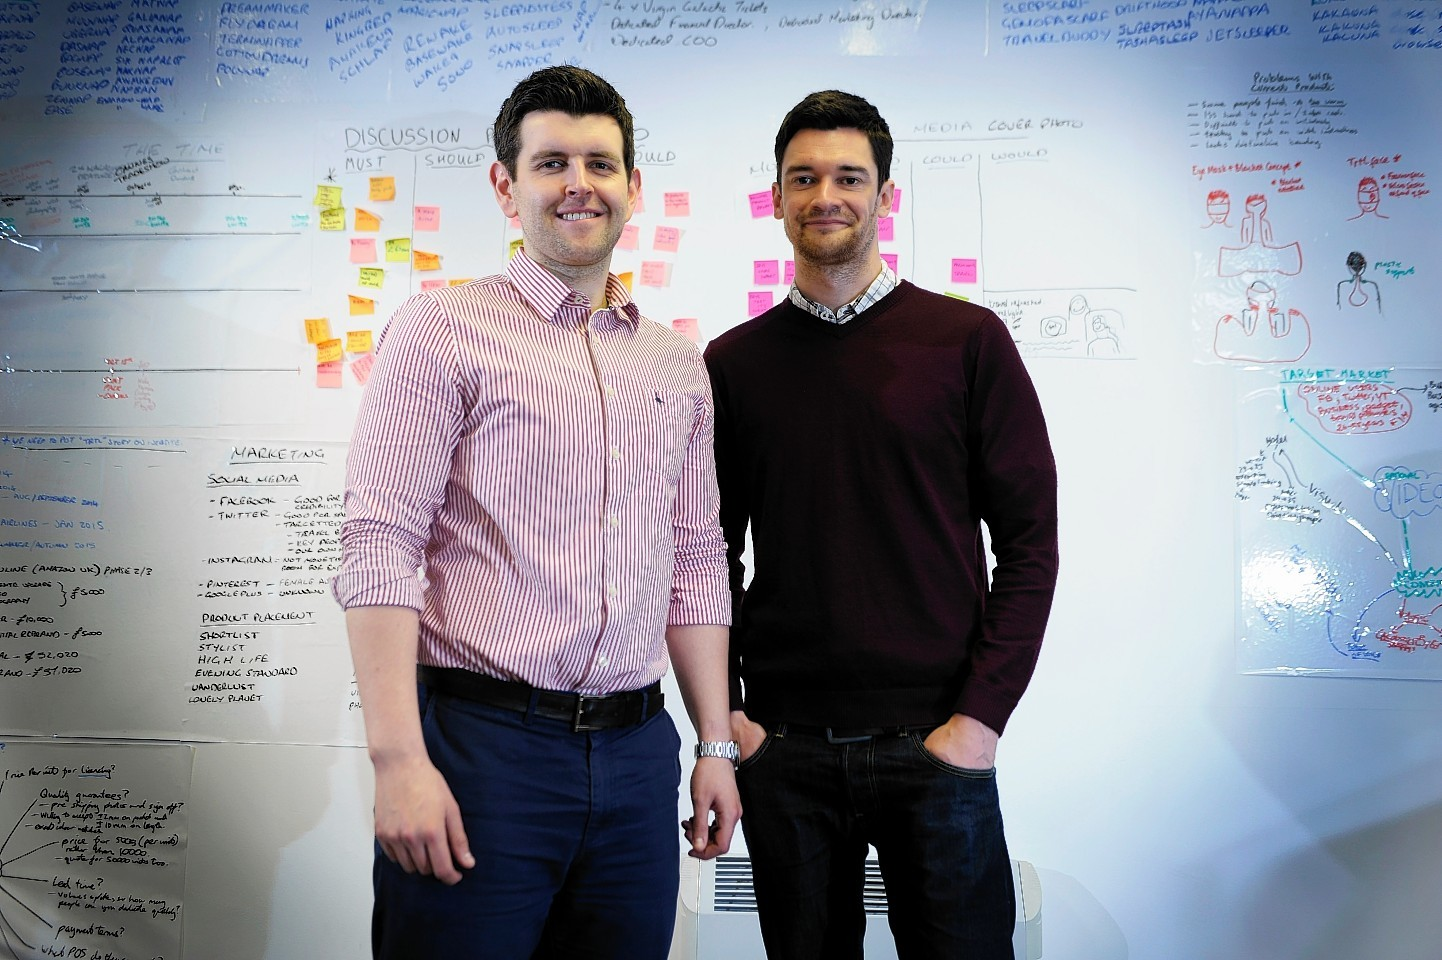 Pictured are Michael Corrigan and David Kellock of Coolside Ltd, trading as Trtl